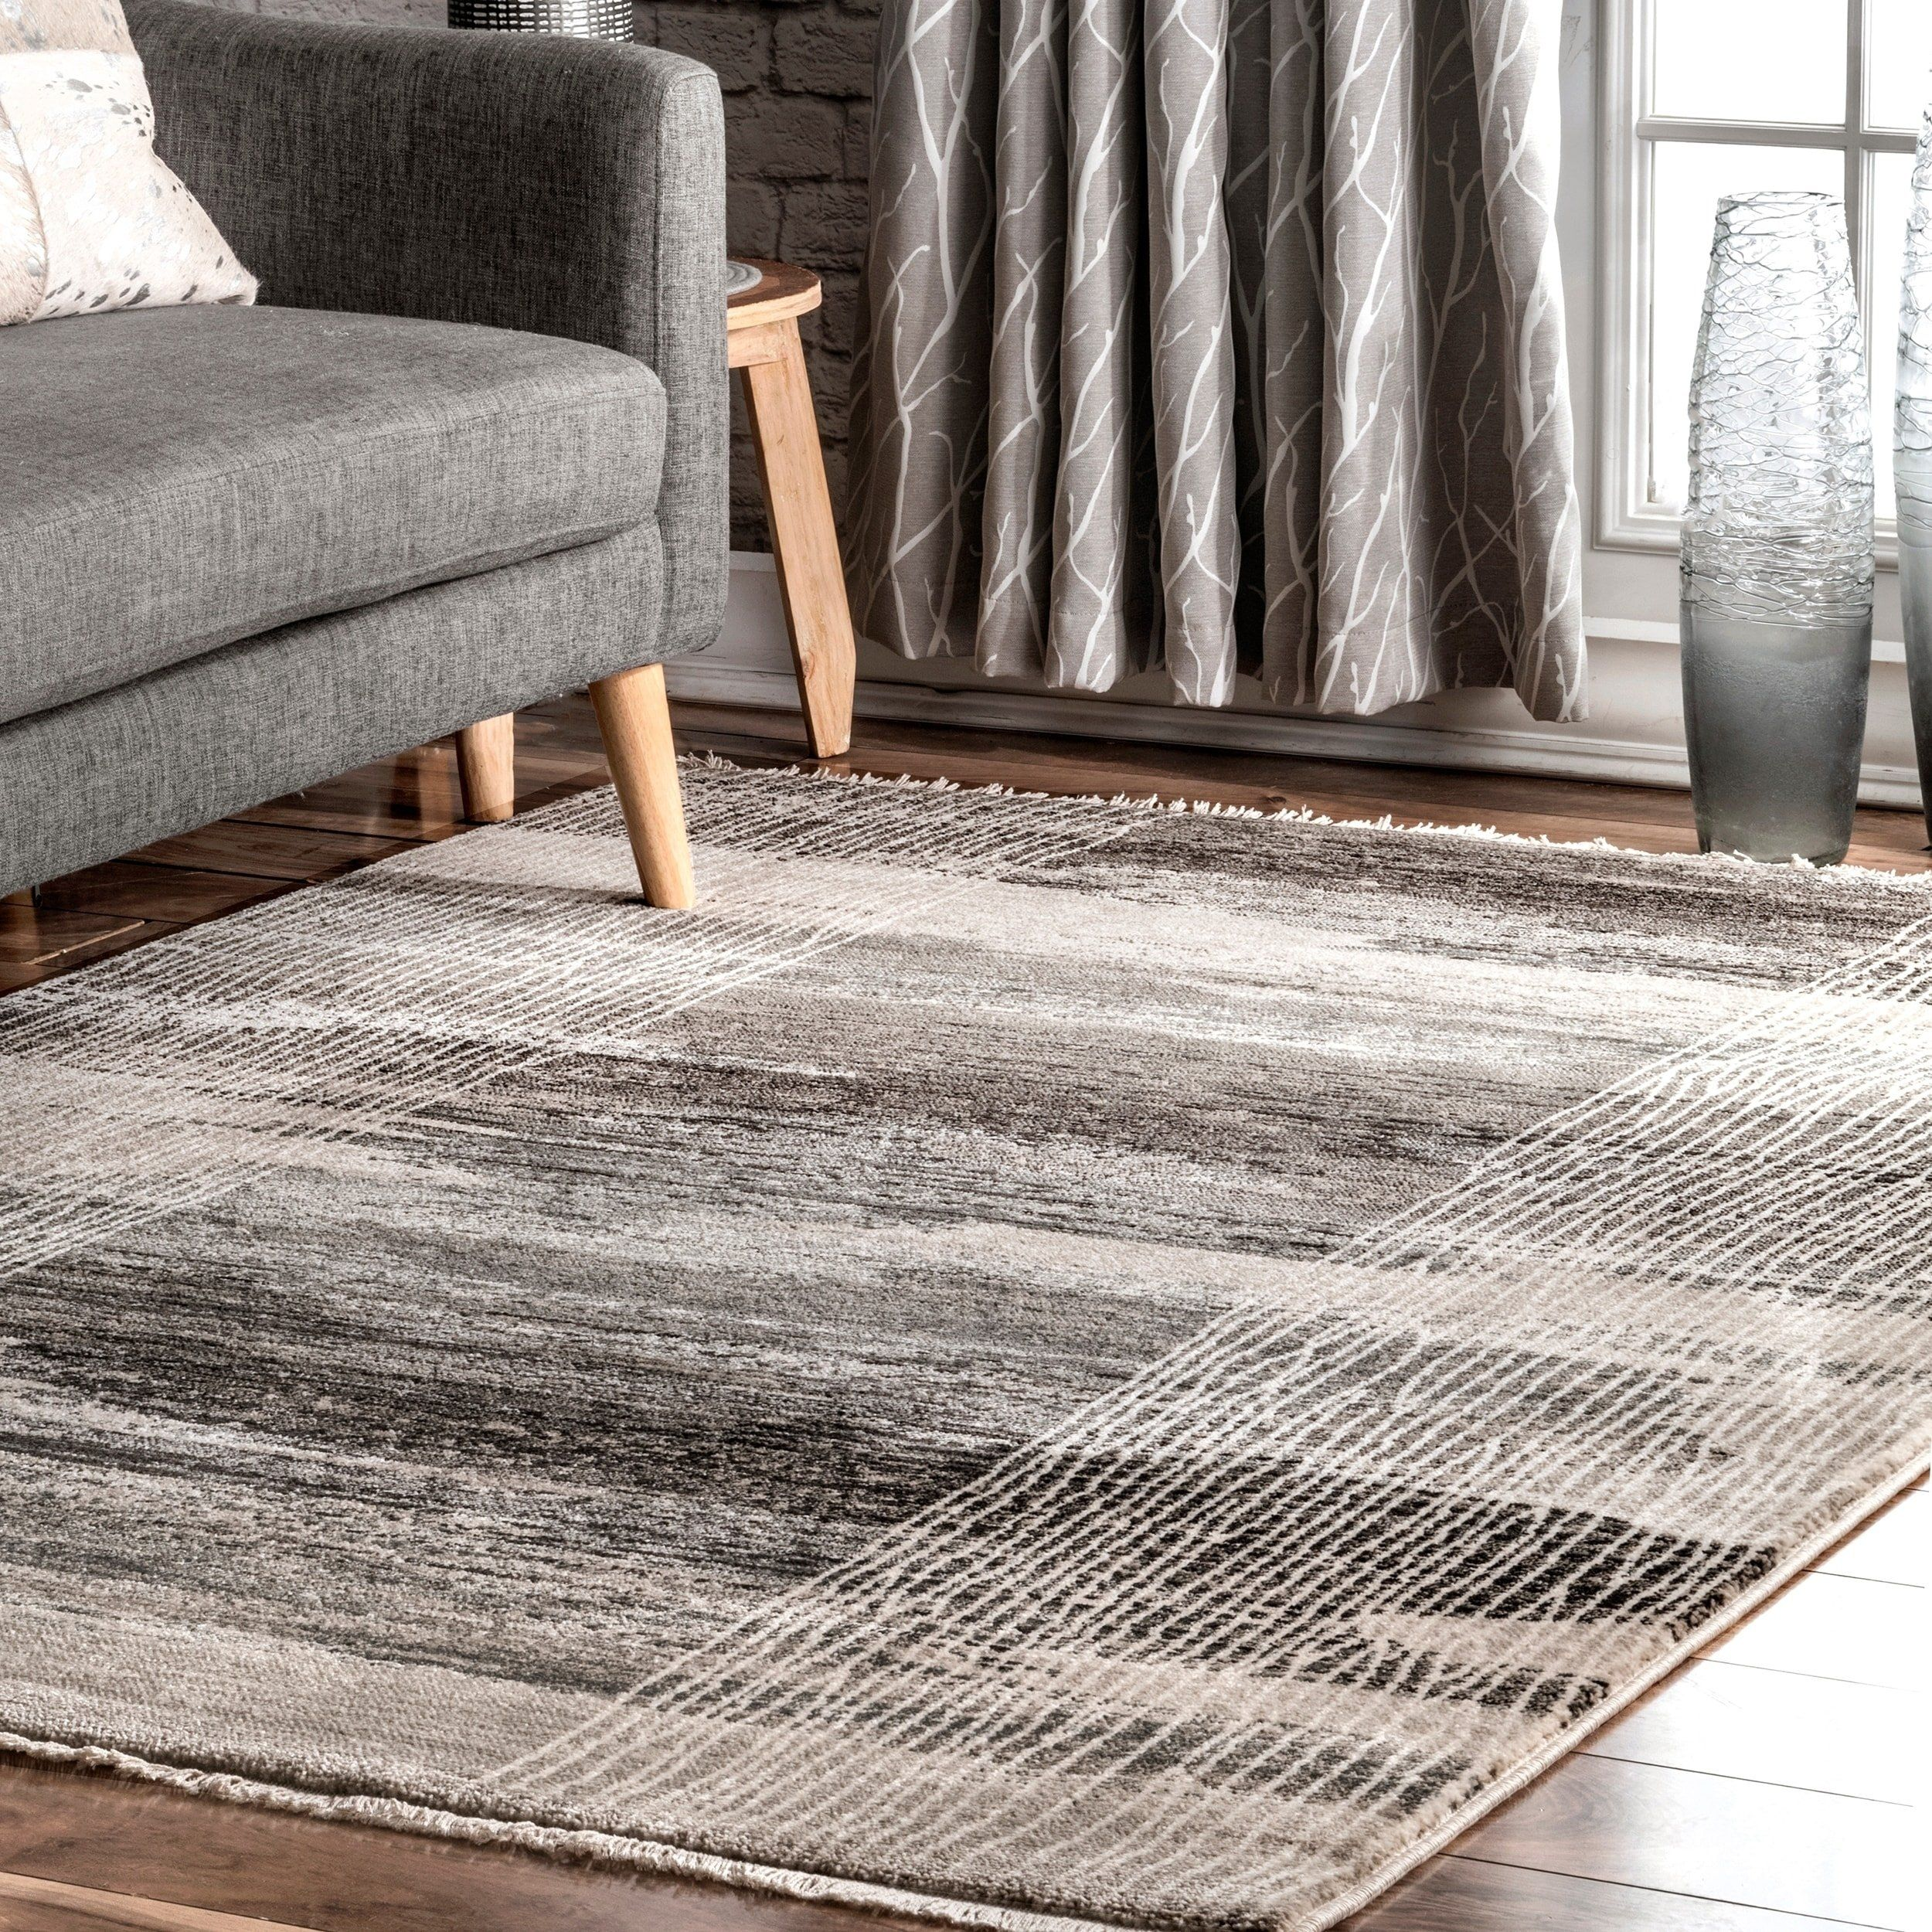 Strick Bolton Flora Modern Lined Area Rug 6 7 X 9 4 Gray